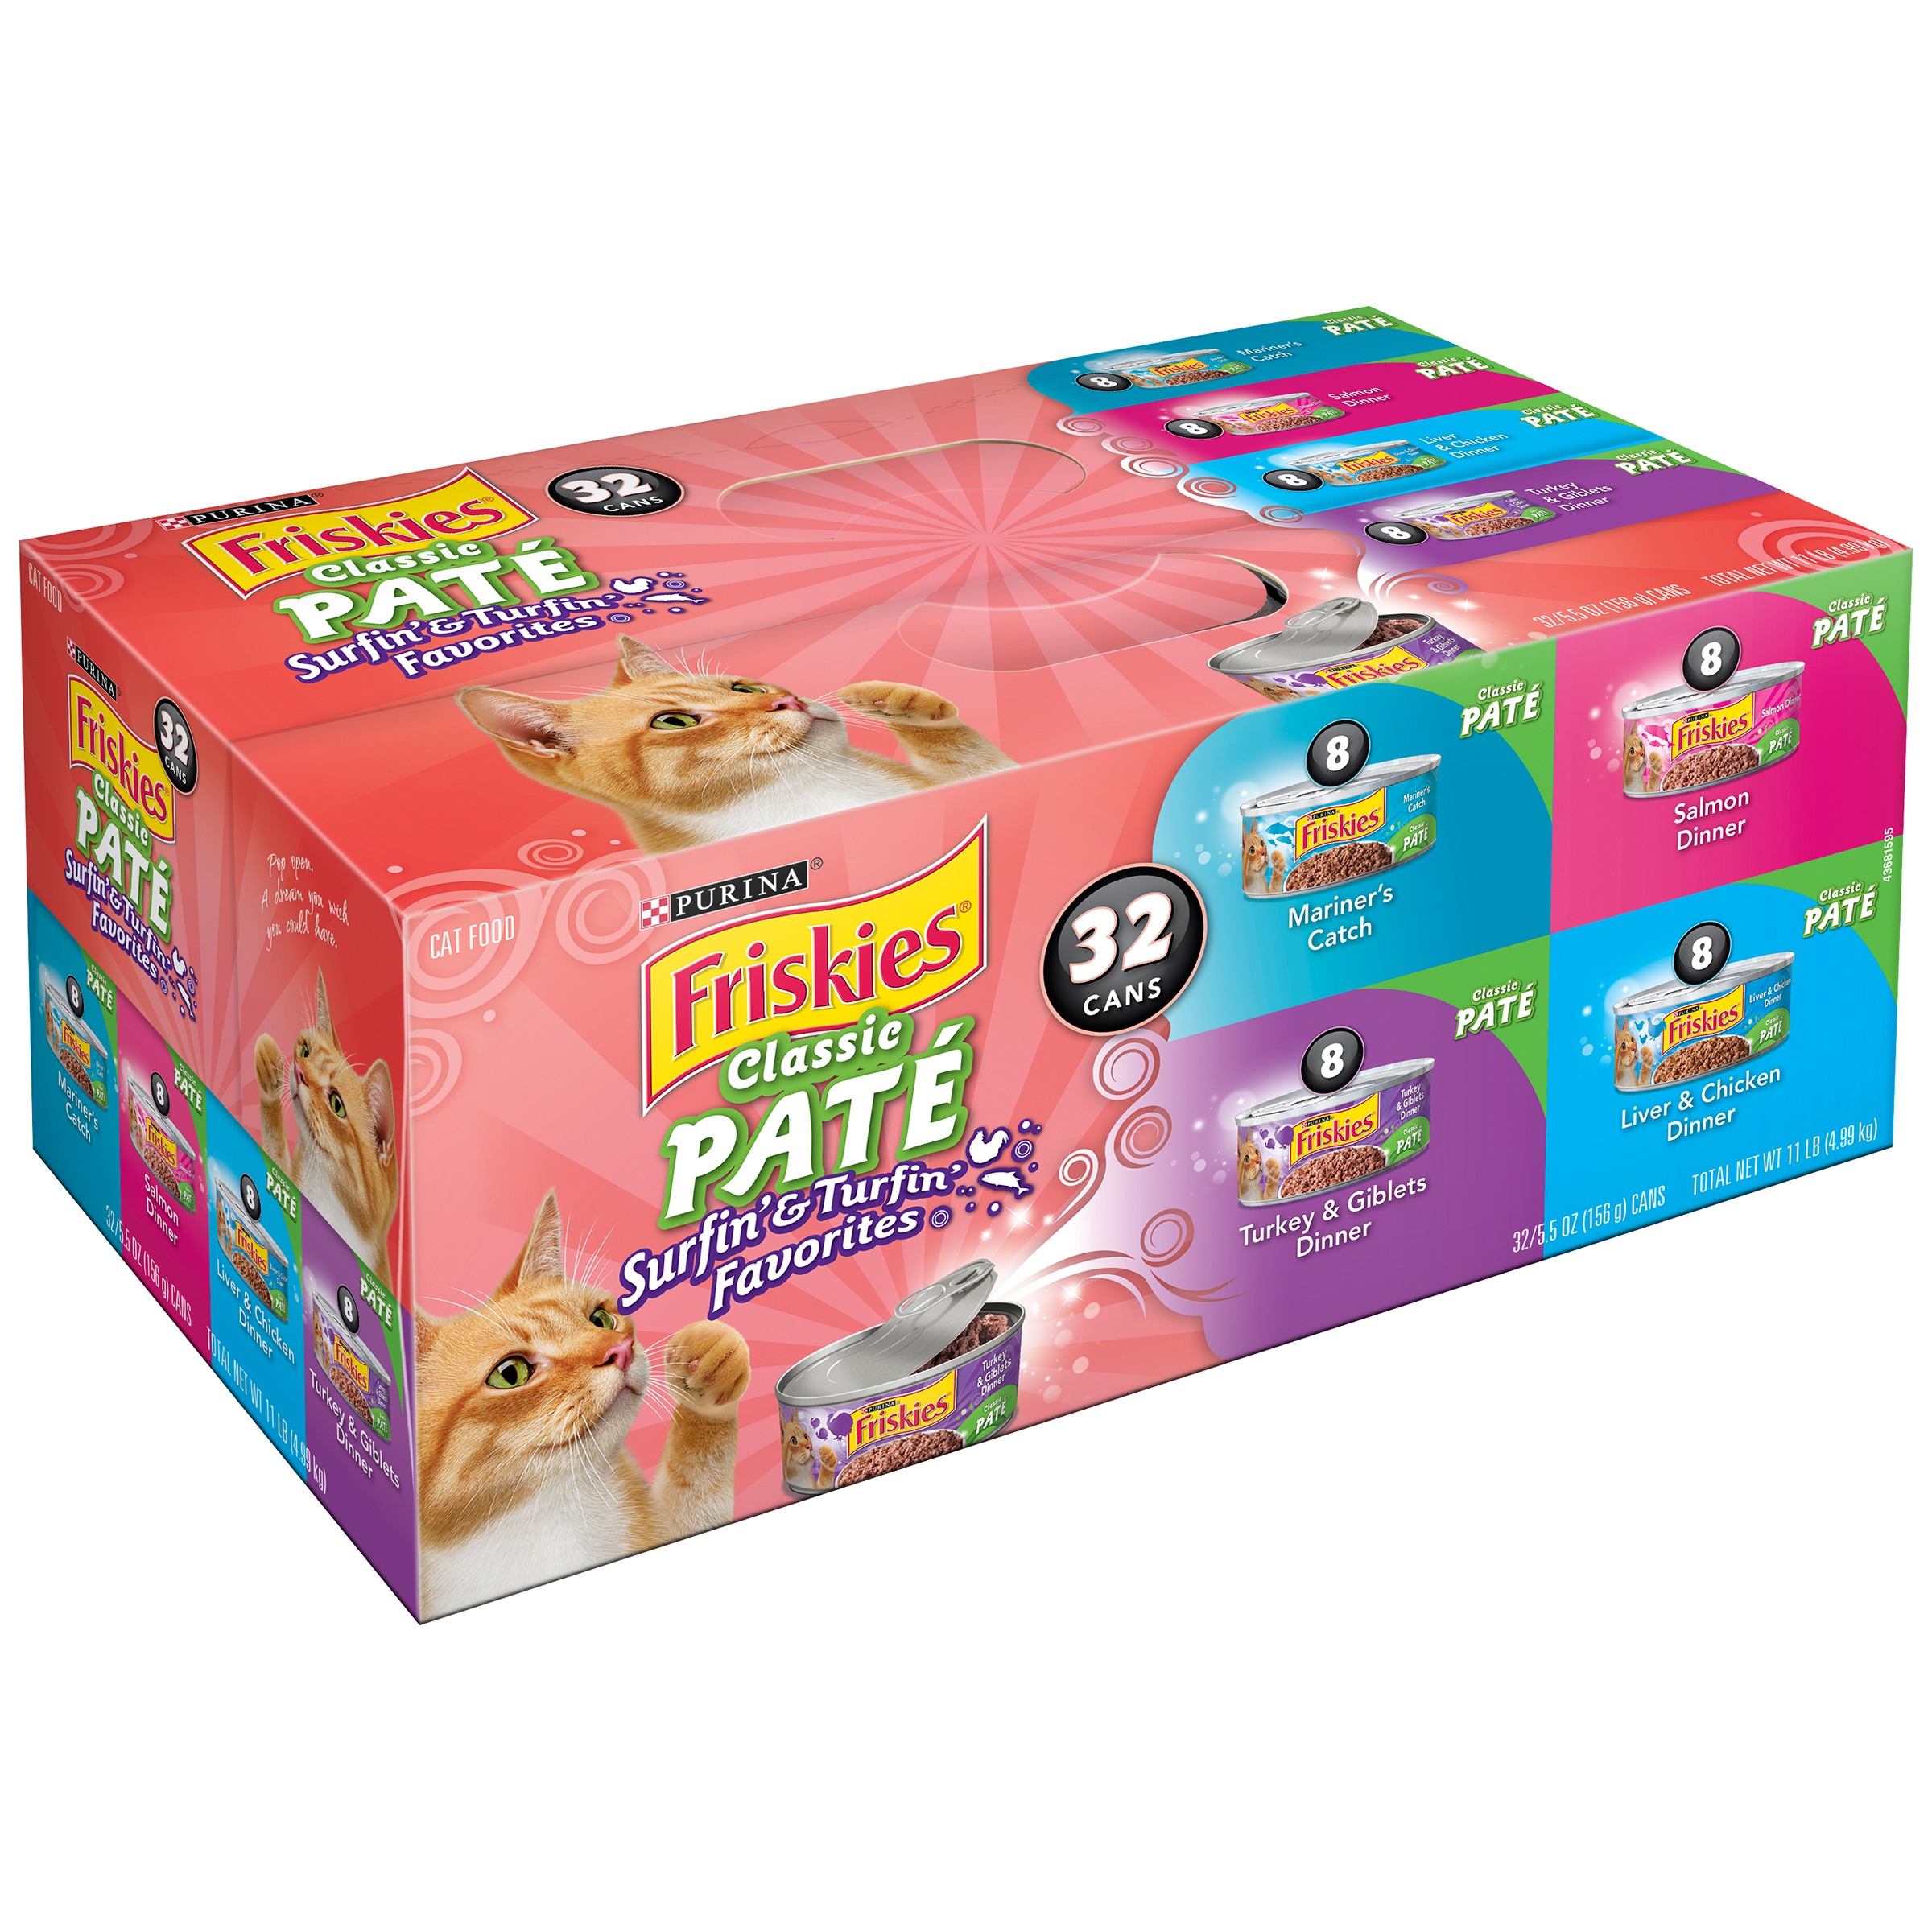 Purina Friskies Classic Pate Surfin' & Turfin' Favorites Cat Food Variety Pack 32-5.5 oz. Cans